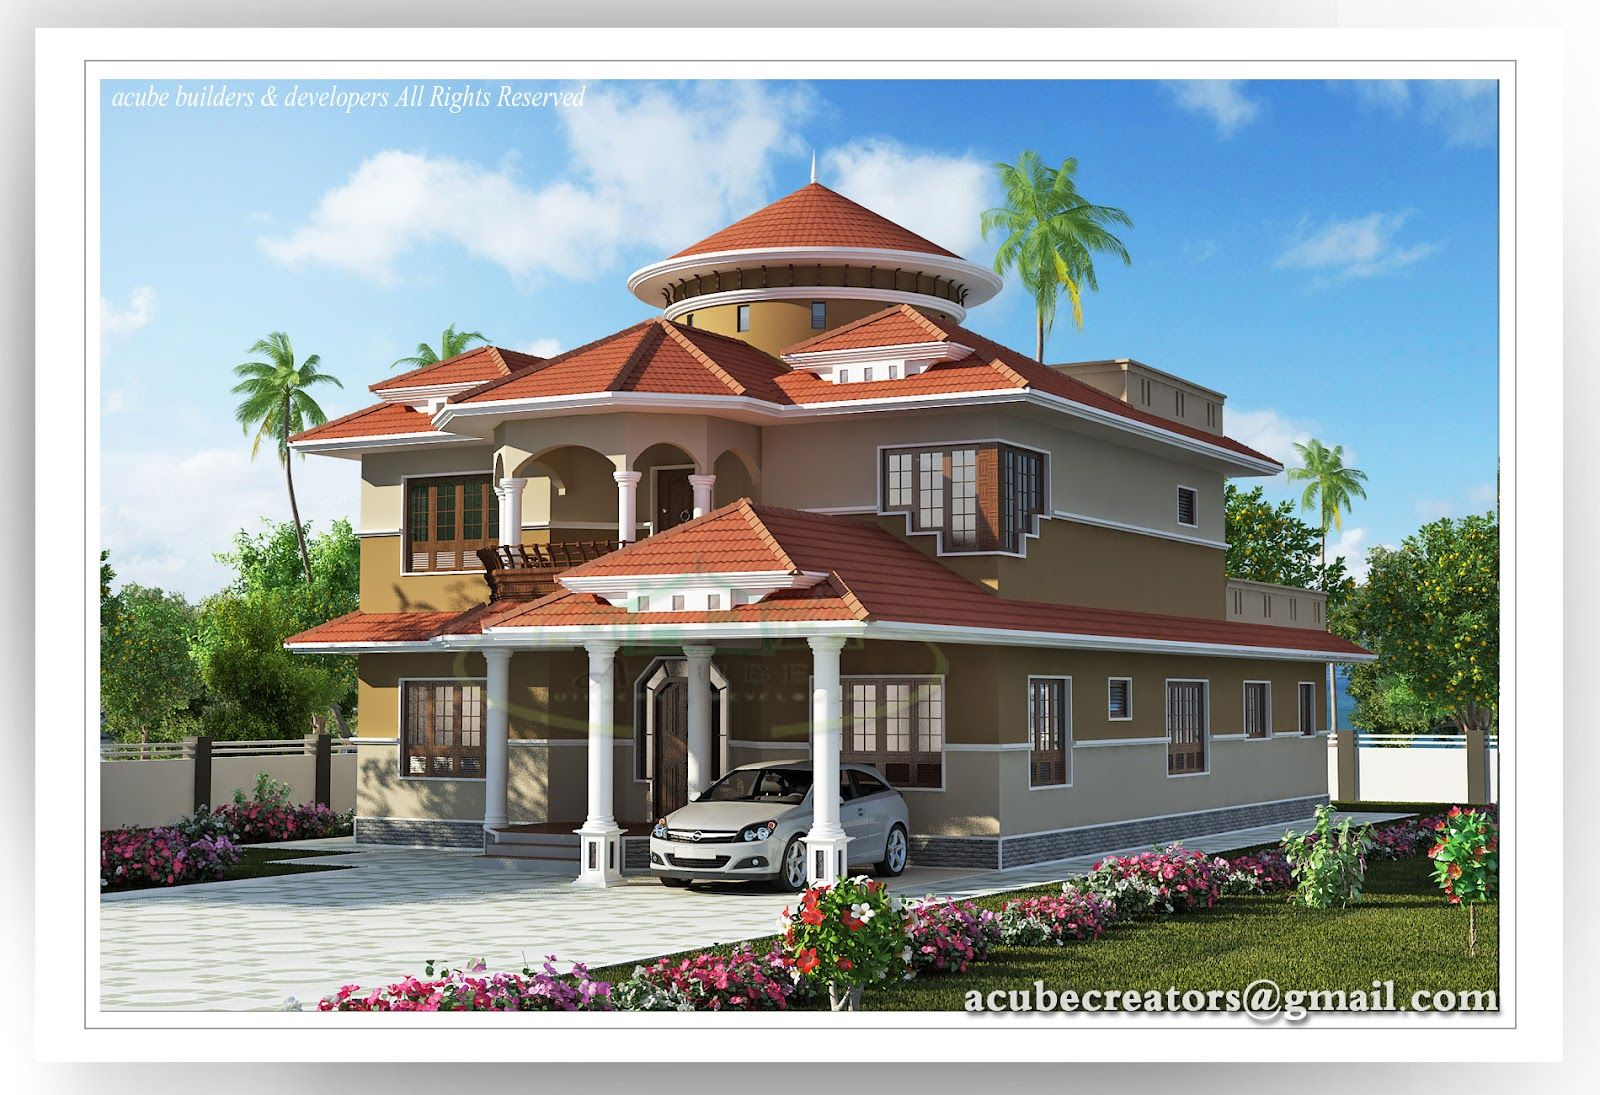 House Design Exterior indian home design,creative exterior design, attractive home